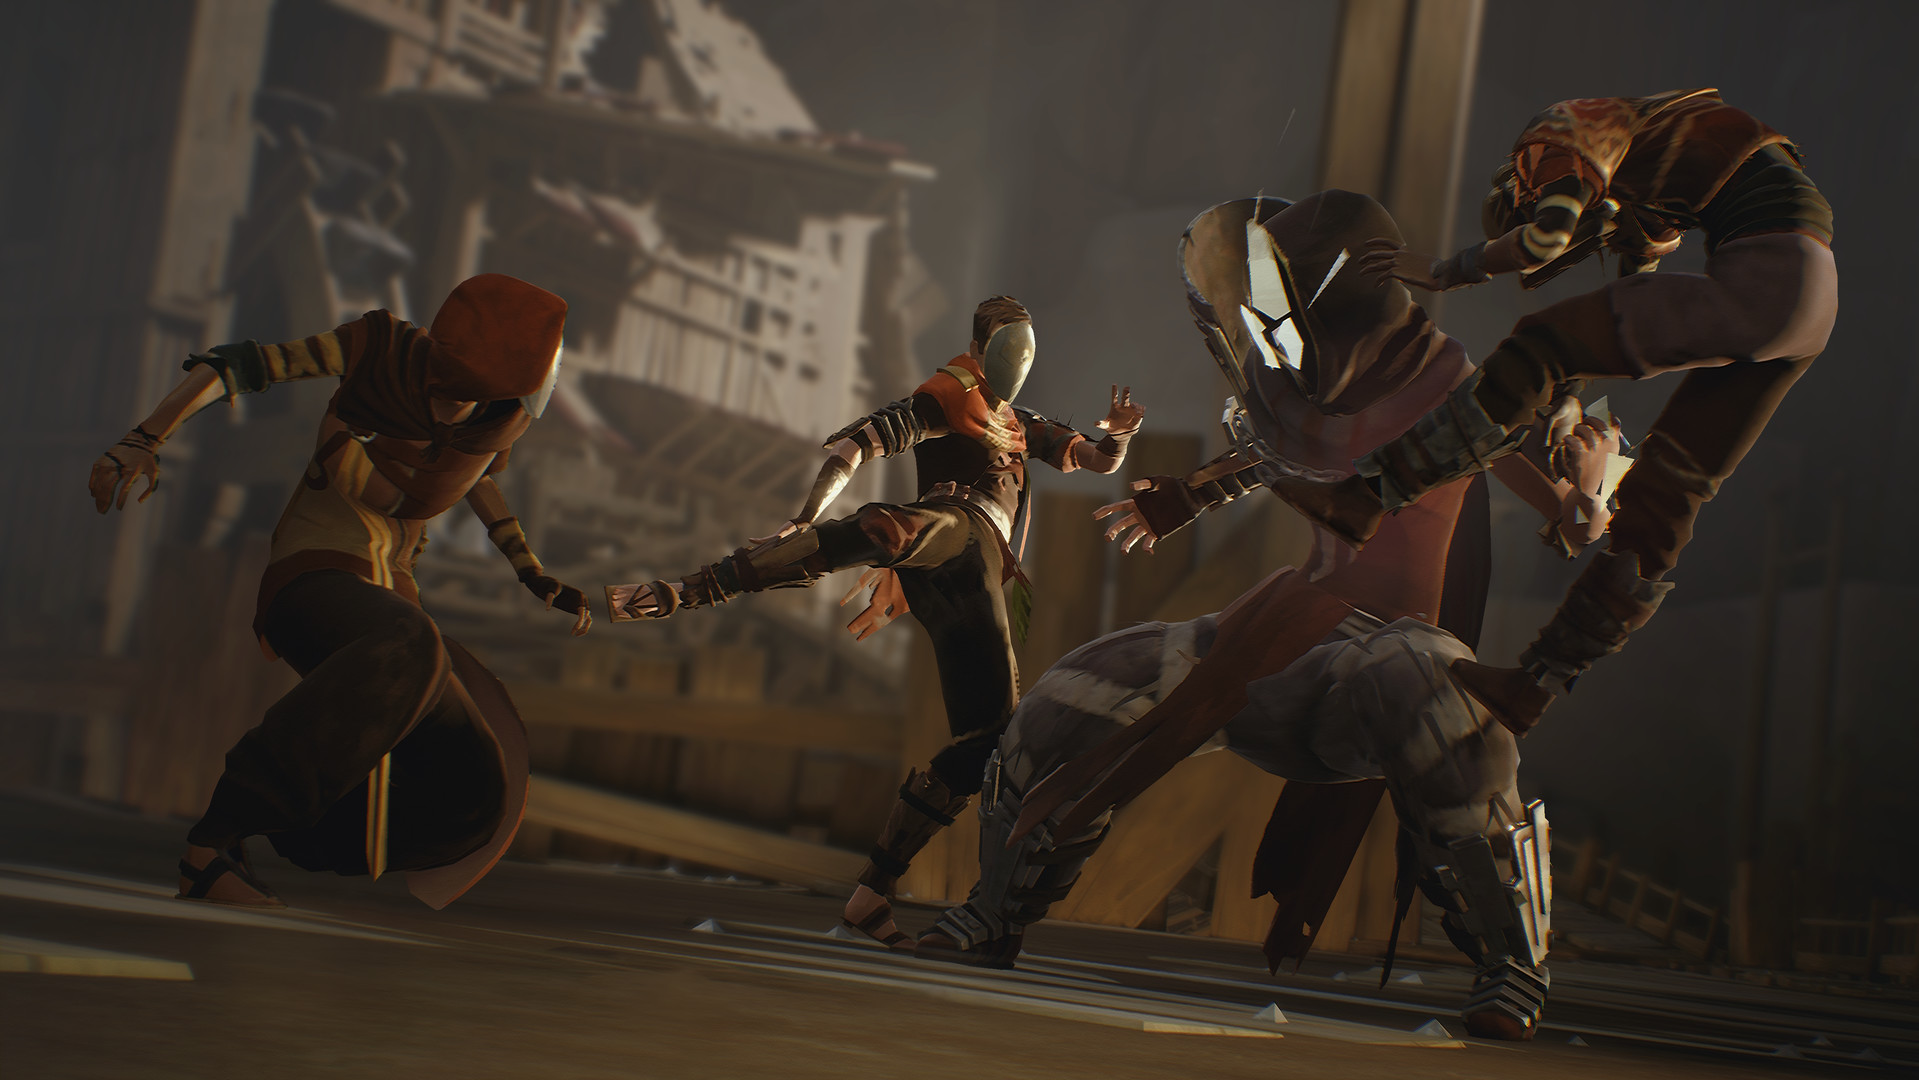 absolver-deluxe-edition-pc-screenshot-04